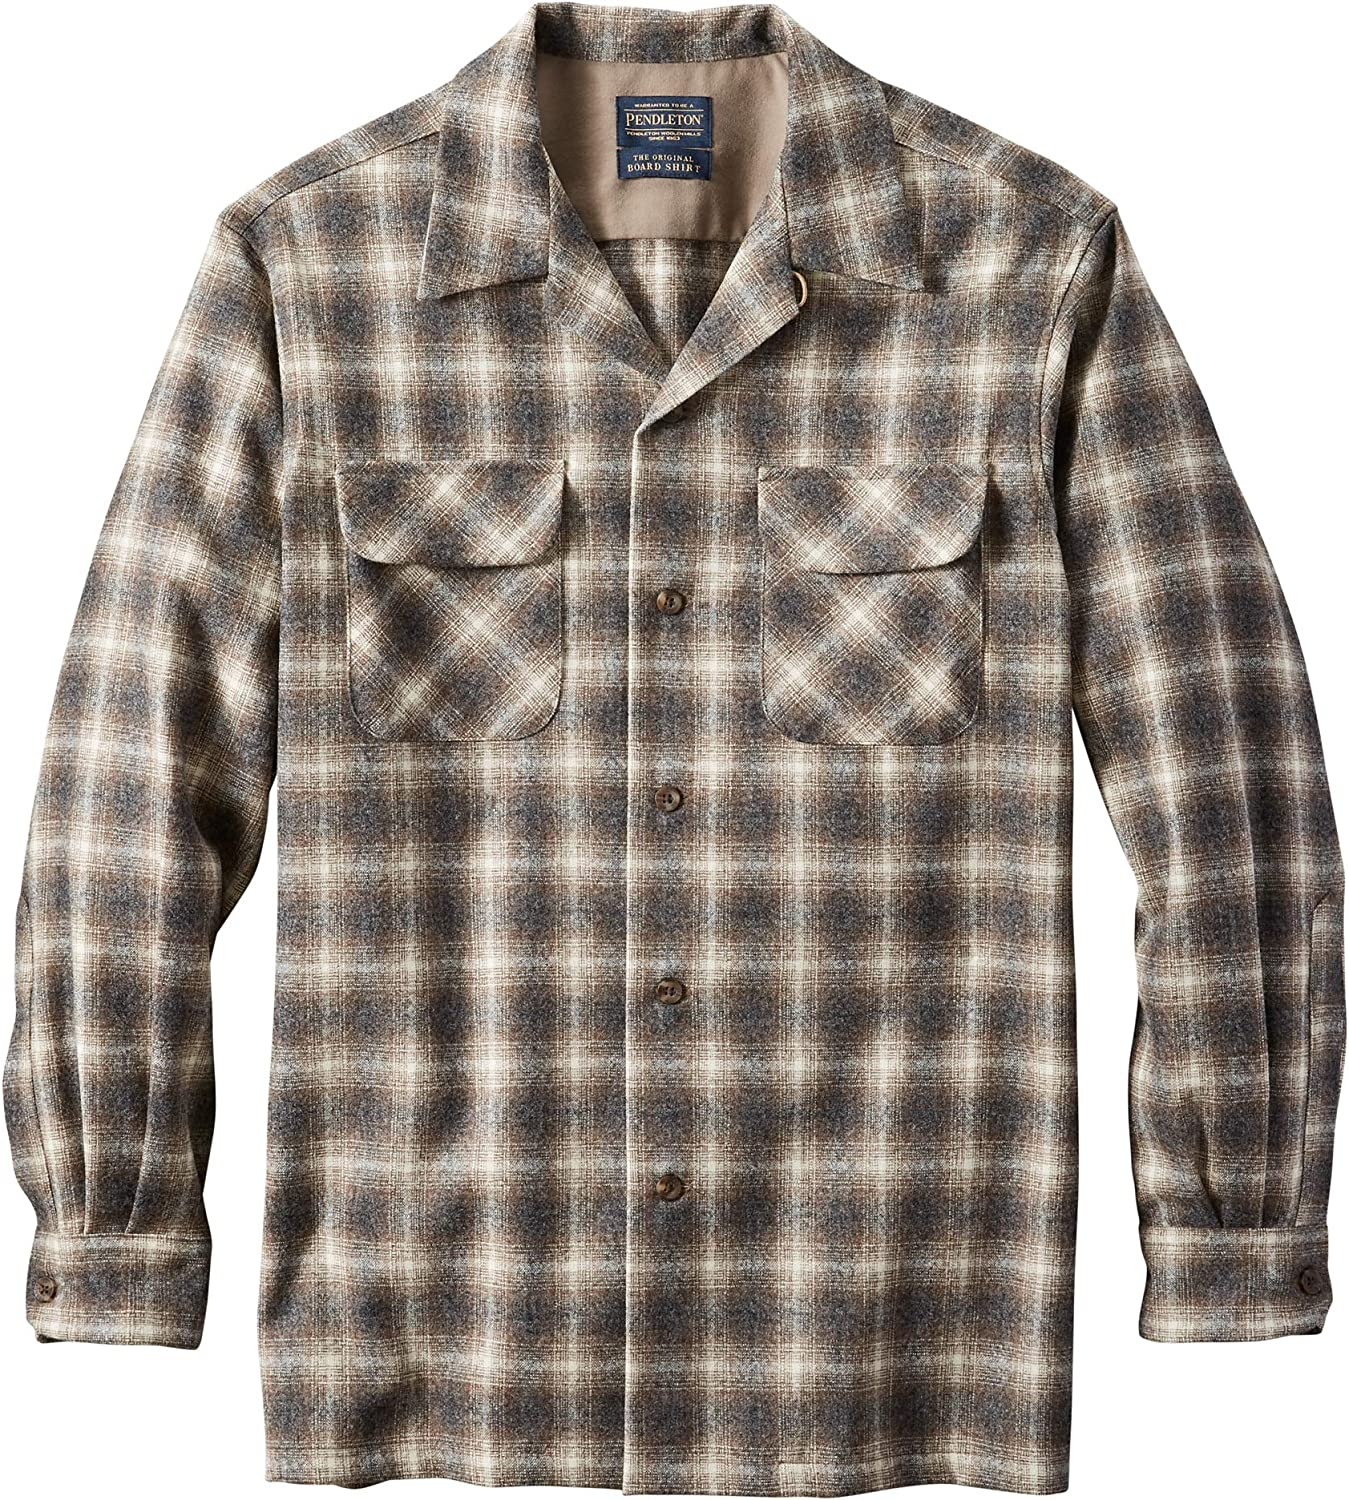 1920s Men's Dress Shirts, Casual Shirts Pendleton Mens Long Sleeve Classic-fit Board Shirt $149.00 AT vintagedancer.com